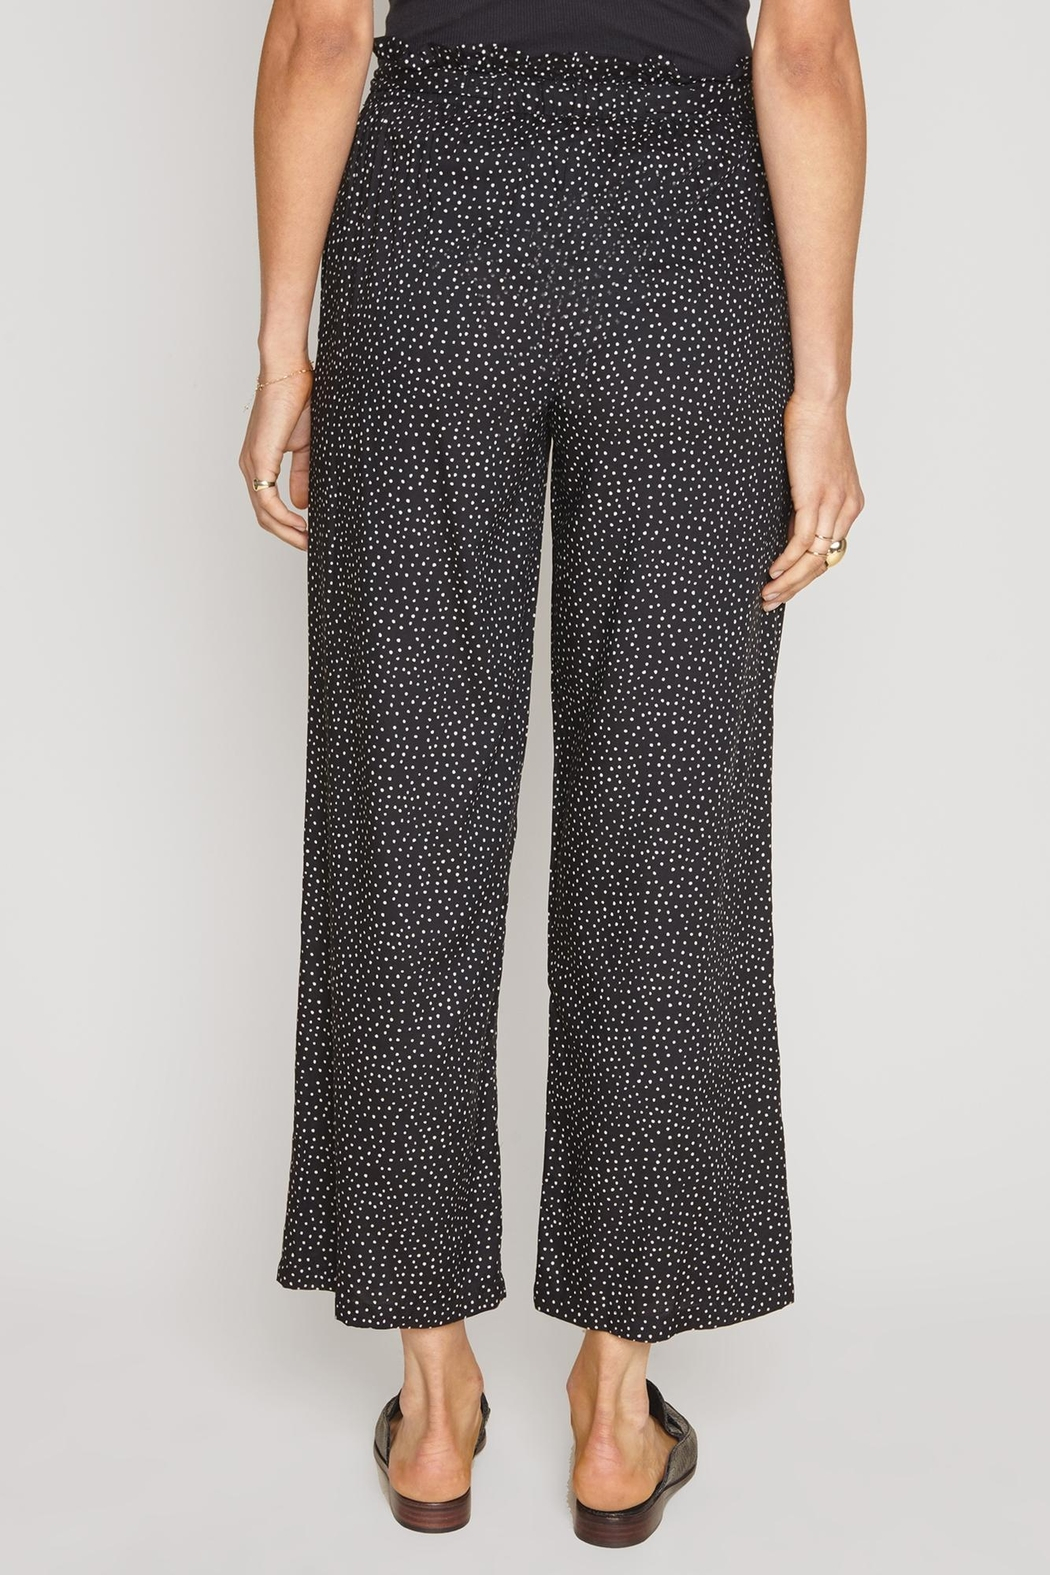 AMUSE SOCIETY Iver Pants - Side Cropped Image